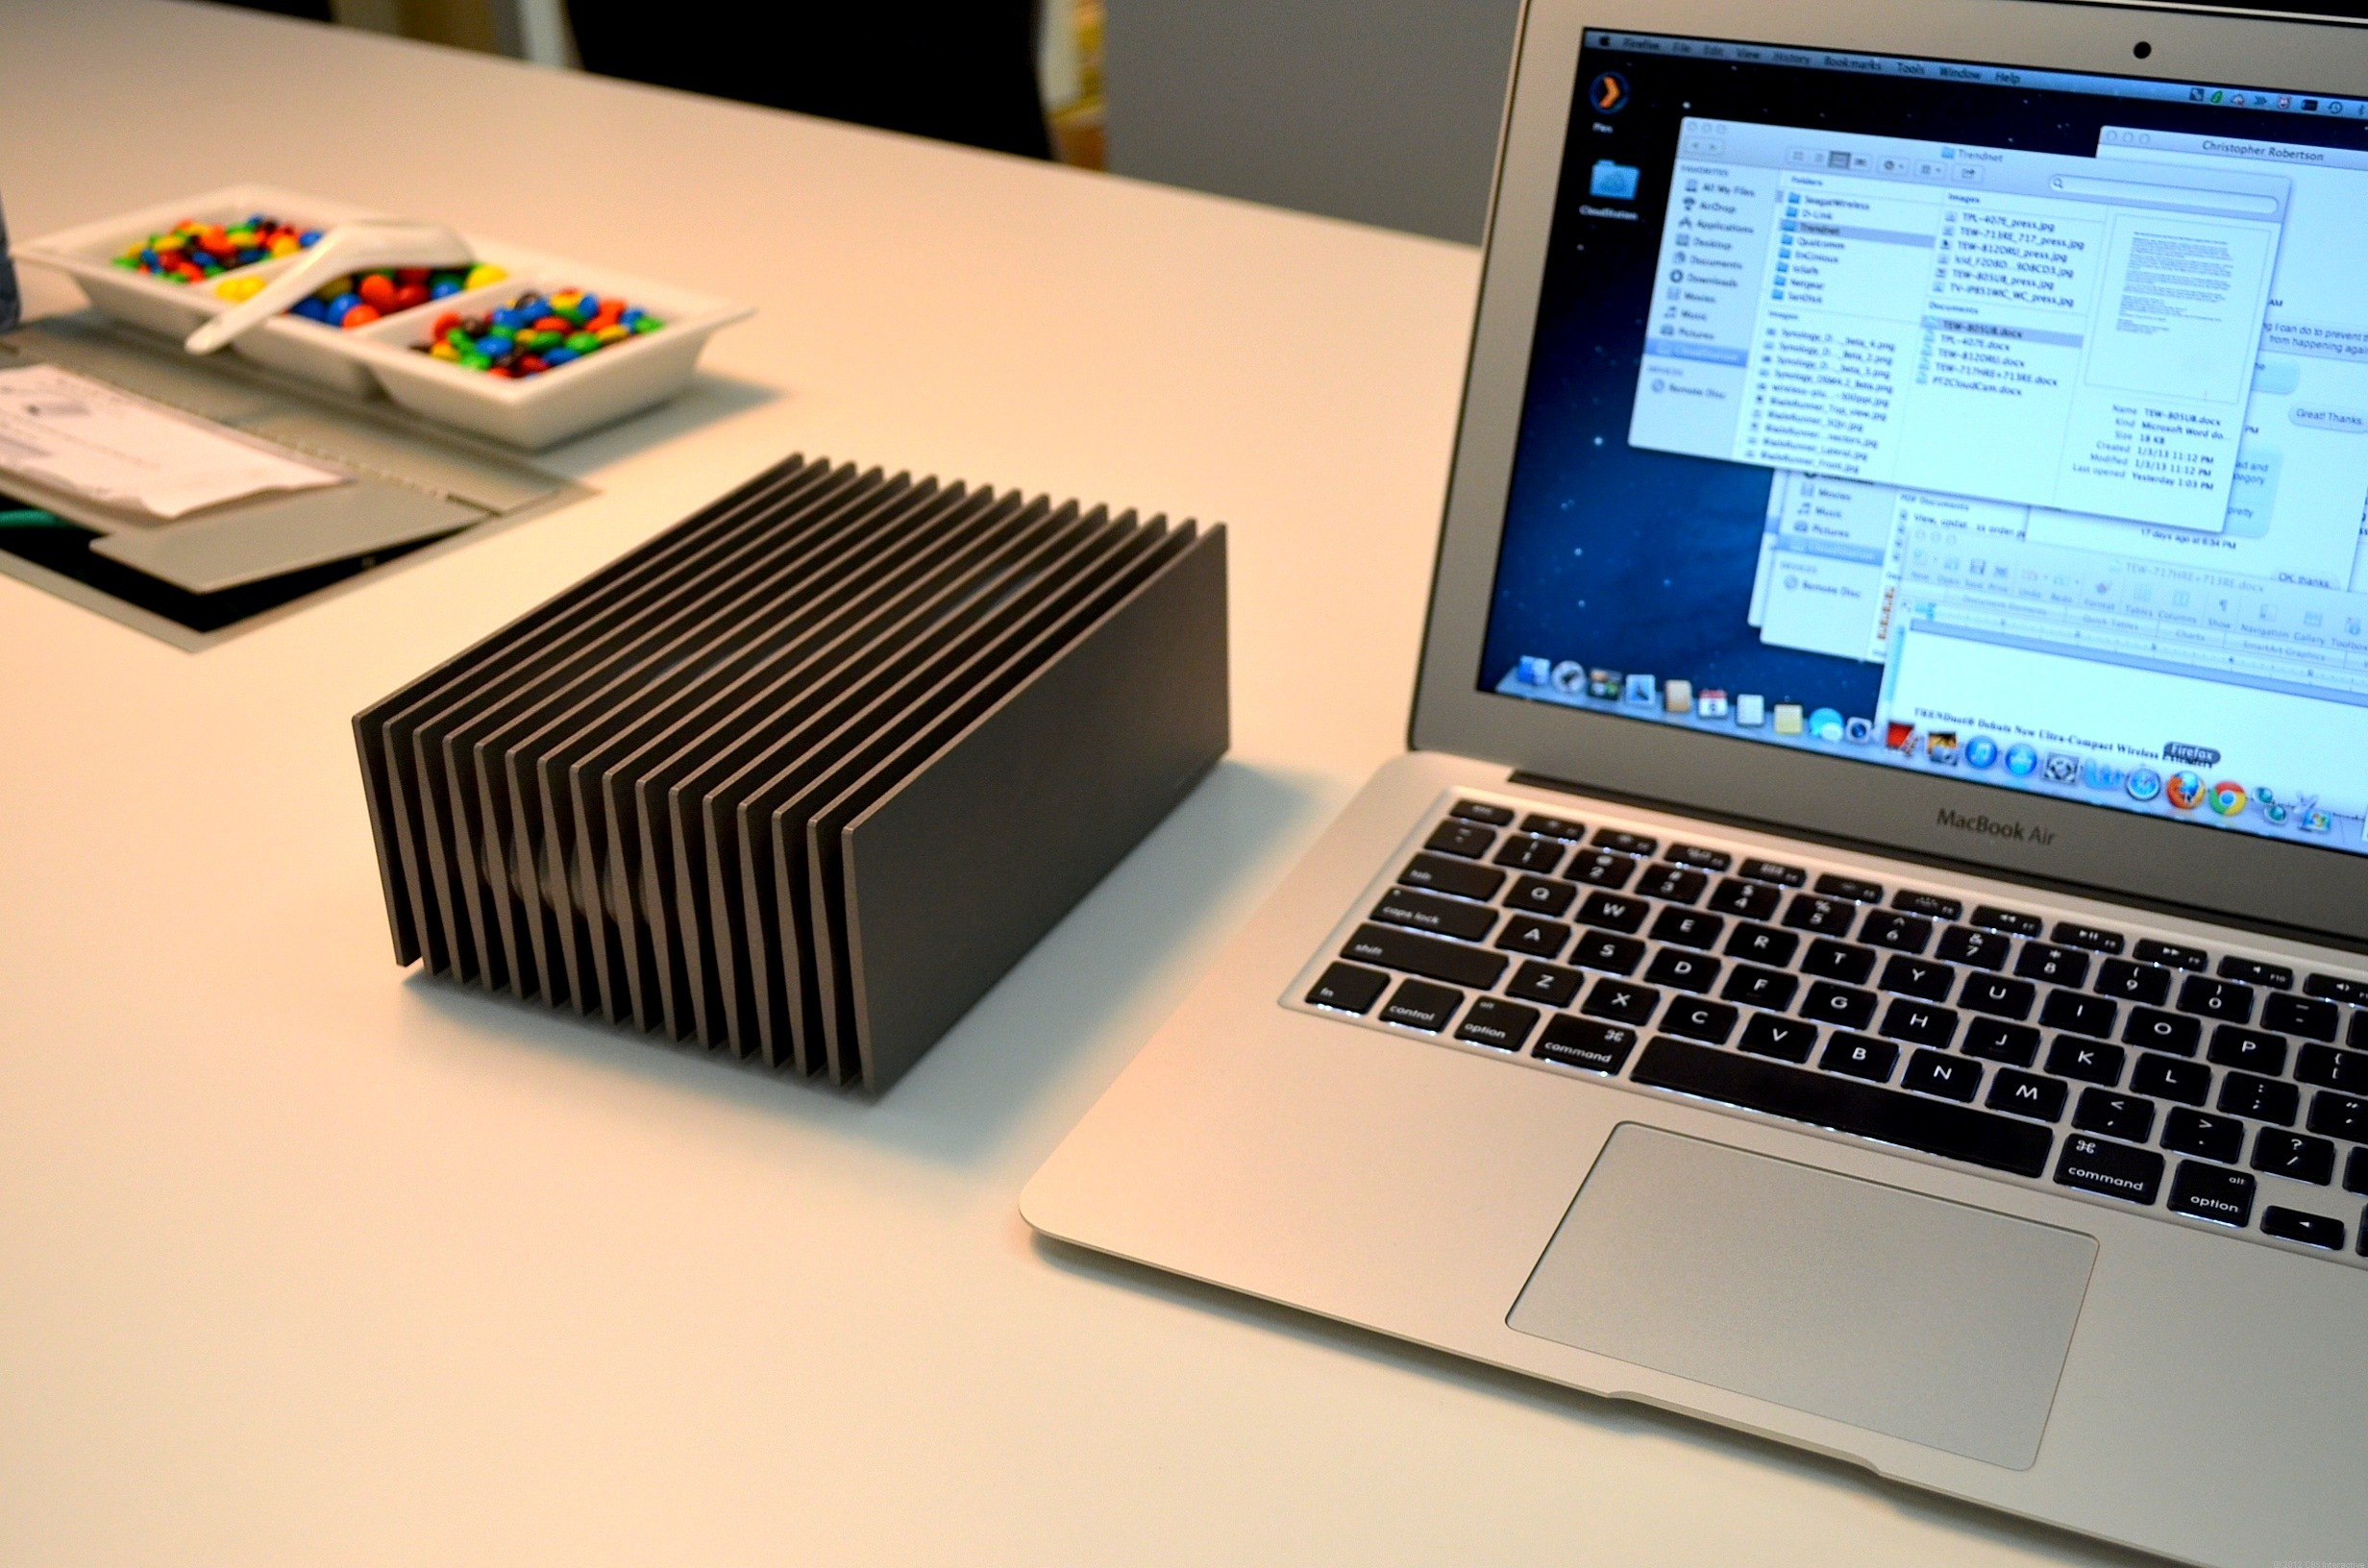 LaCie says the Blade Runner makes a bold statement when having it on the desk. Only 9,999 units of the drive are made.